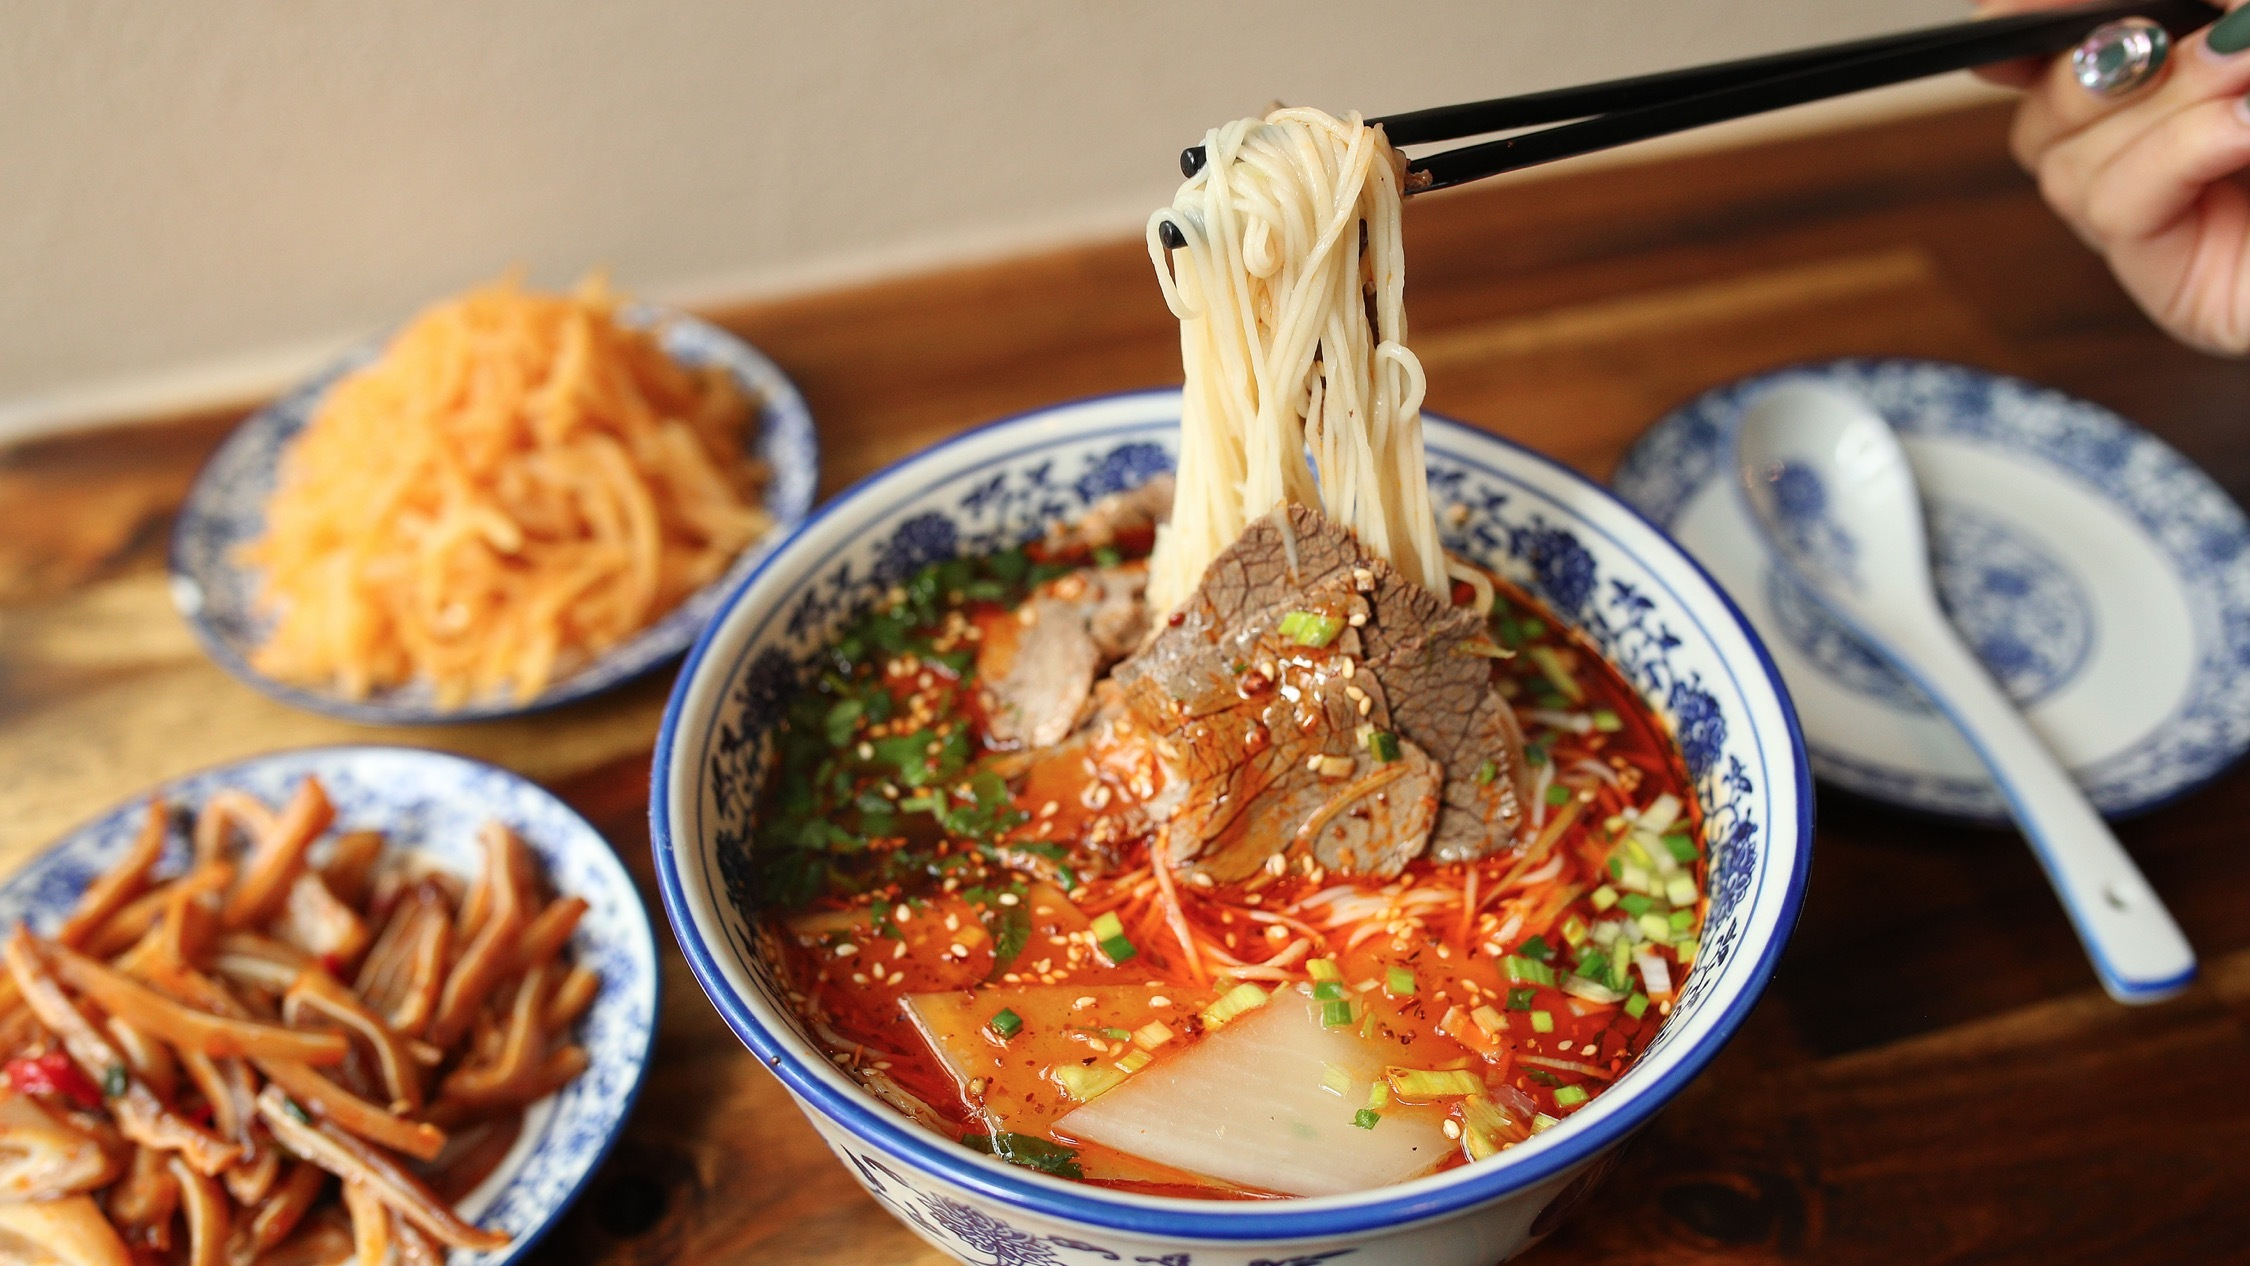 Food at Lanzhou Beef Noodle